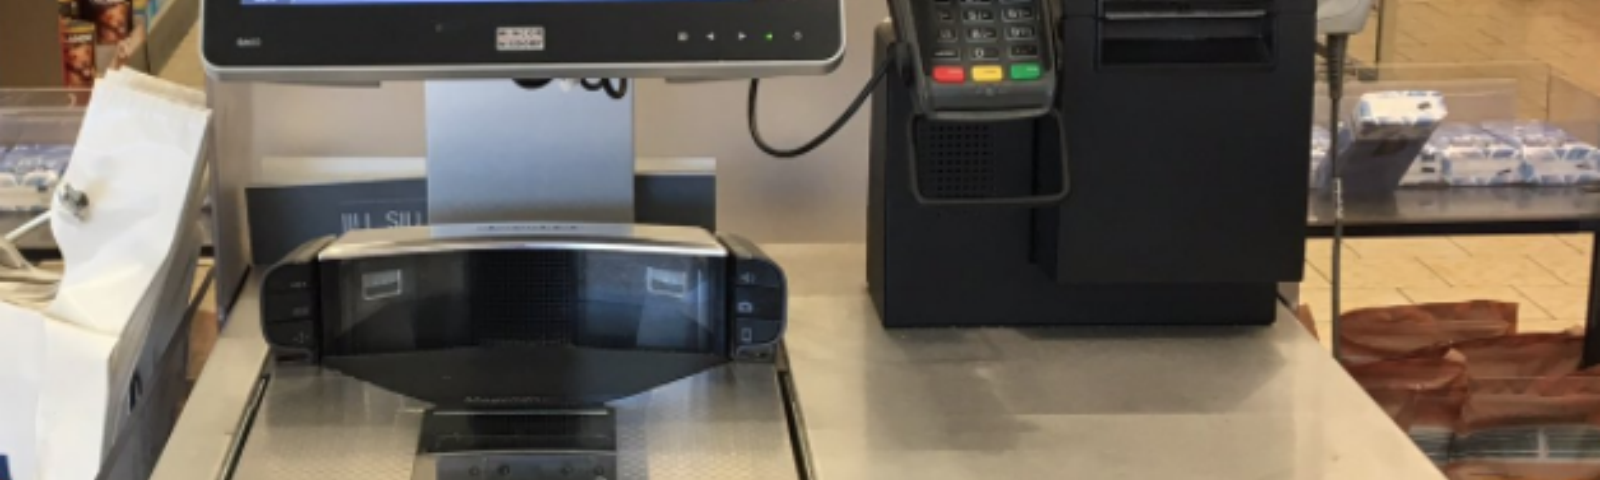 Self-checkout in supermarket